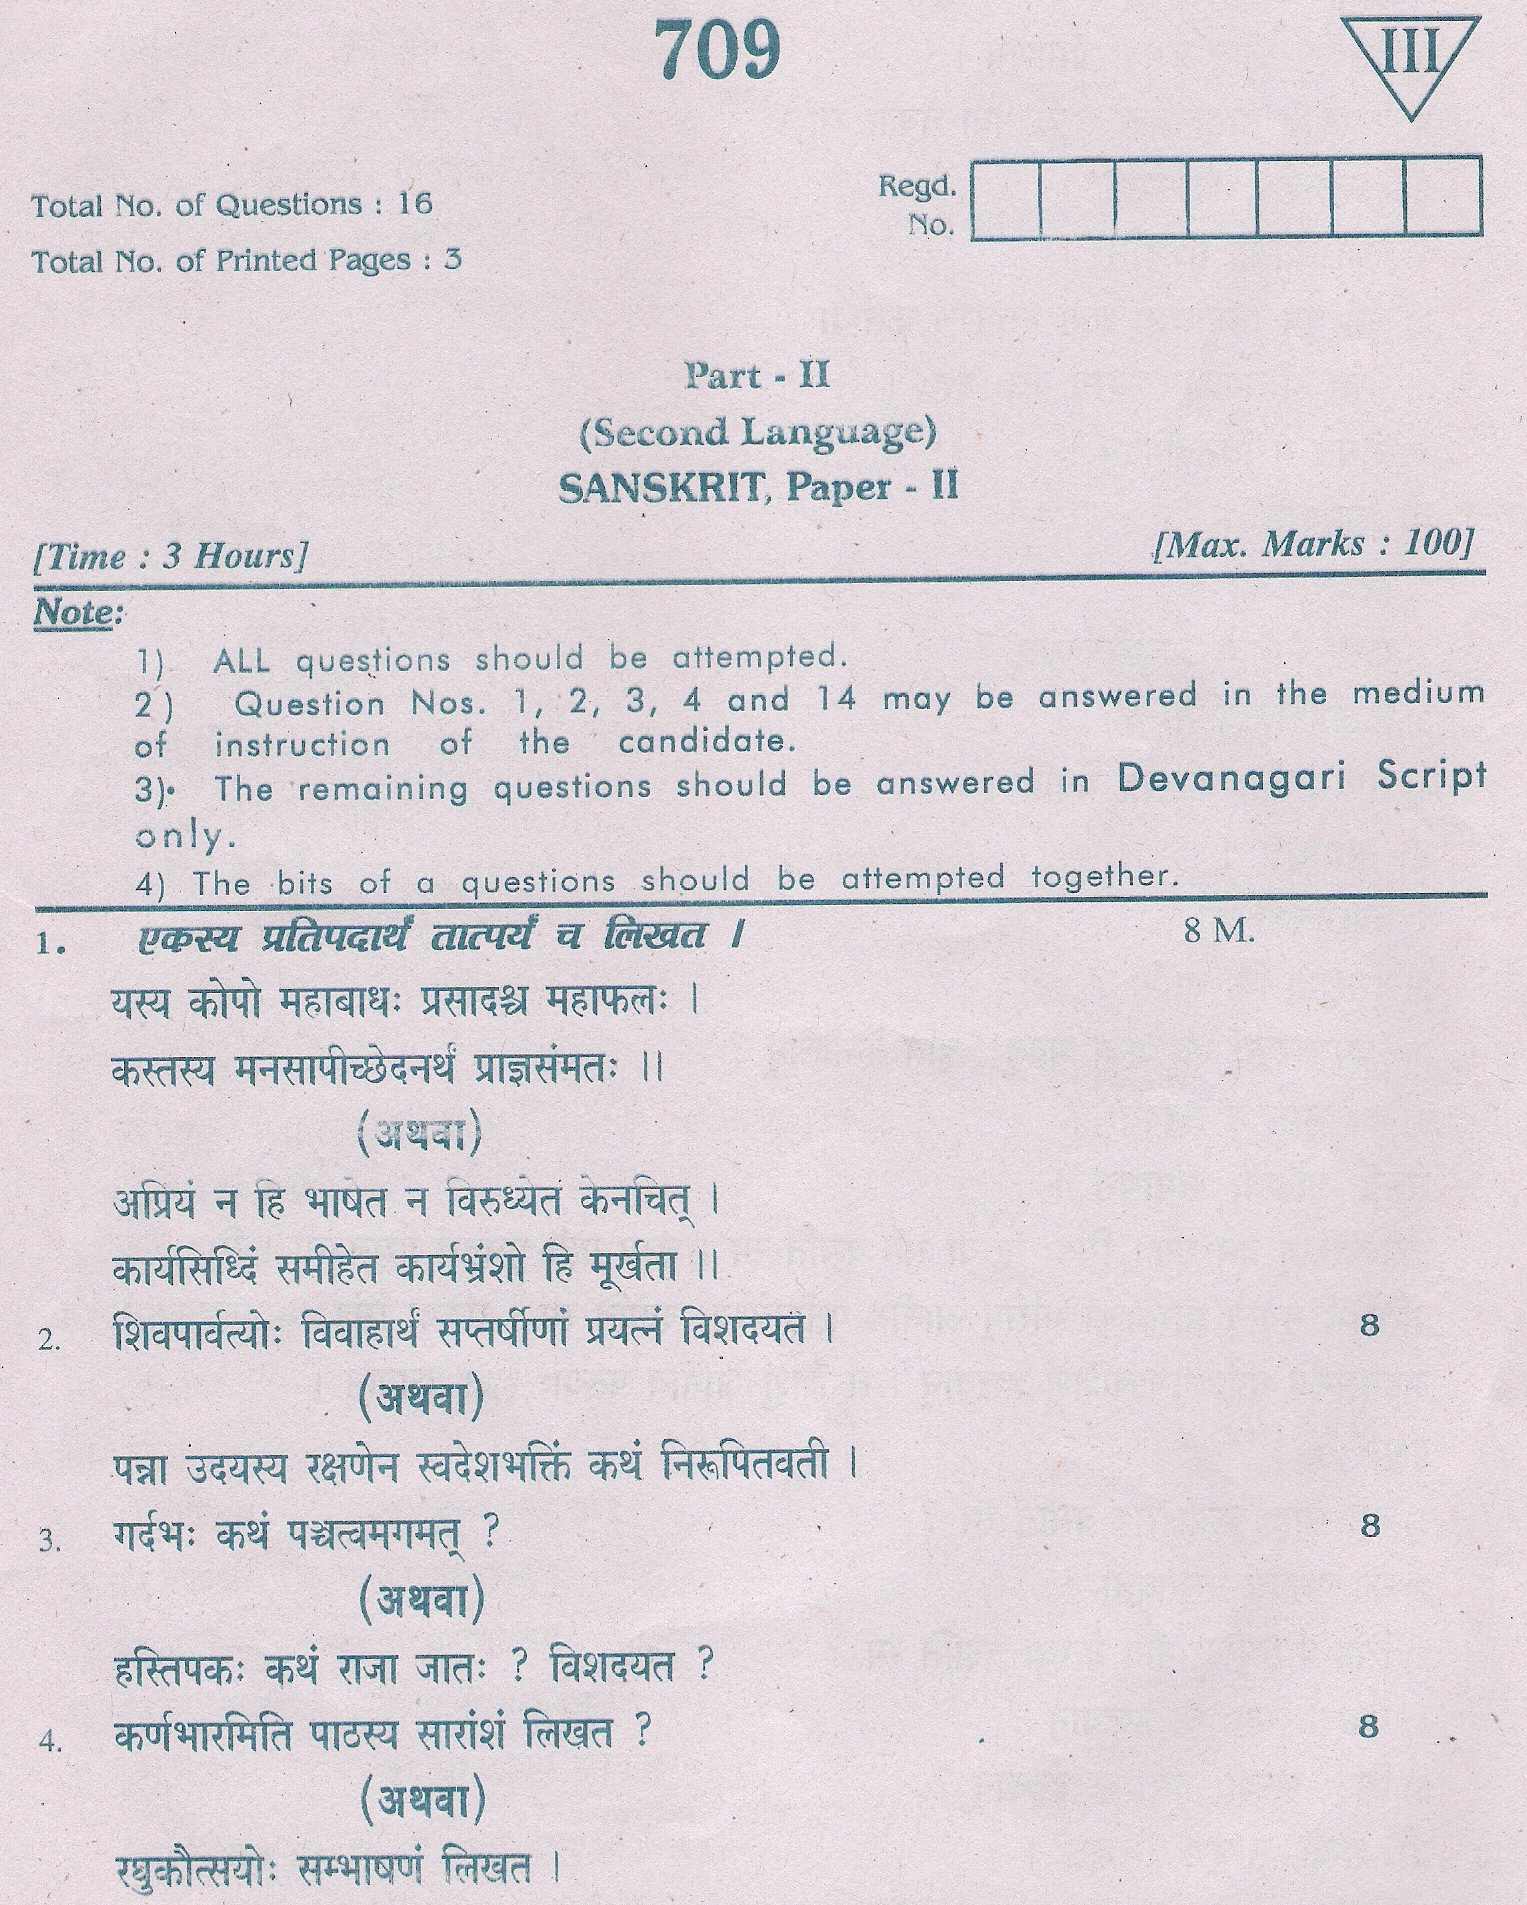 intermediate bridge course model papers Board of intermediate education previous years question papers find model question papers and previous years question papers of any university or educational board in india students can submit previous years question papers and join google adsense revenue sharing.